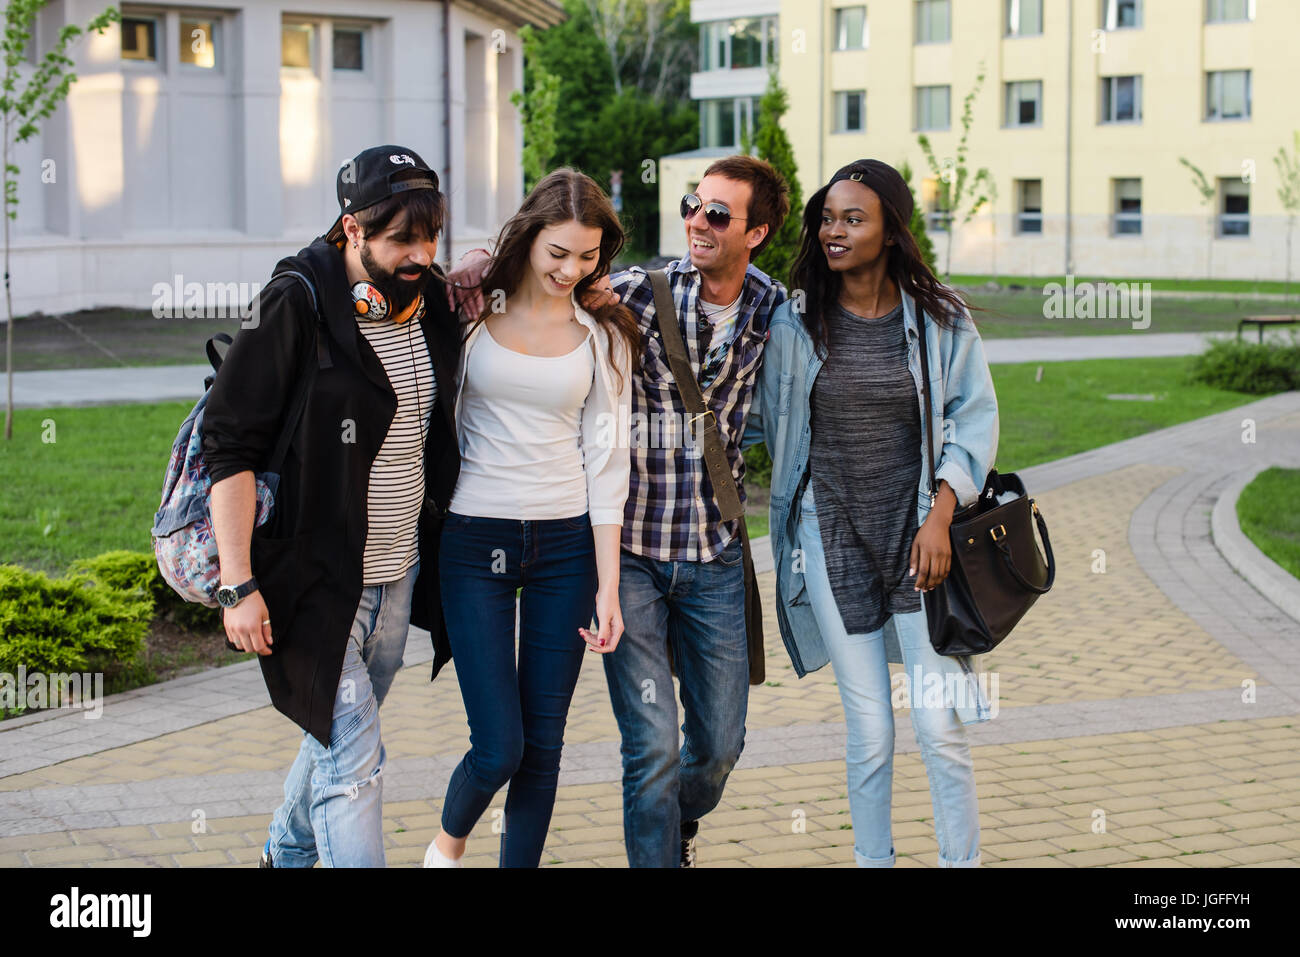 Four happy friends walking on campus and talking. Two boys and rwo girls wearing casual clothes. - Stock Image